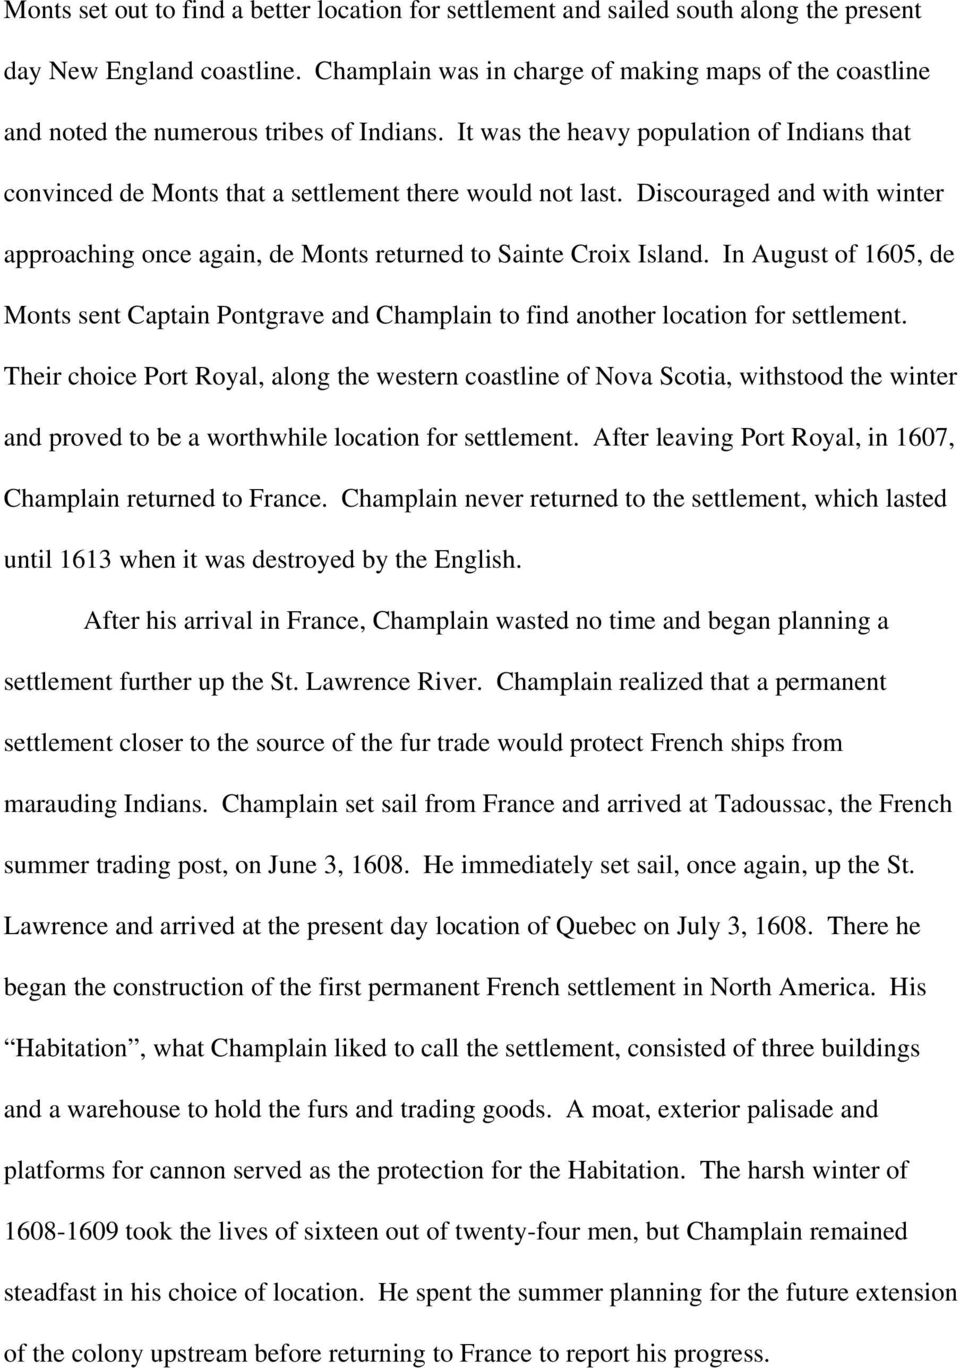 Discouraged and with winter approaching once again, de Monts returned to Sainte Croix Island. In August of 1605, de Monts sent Captain Pontgrave and Champlain to find another location for settlement.